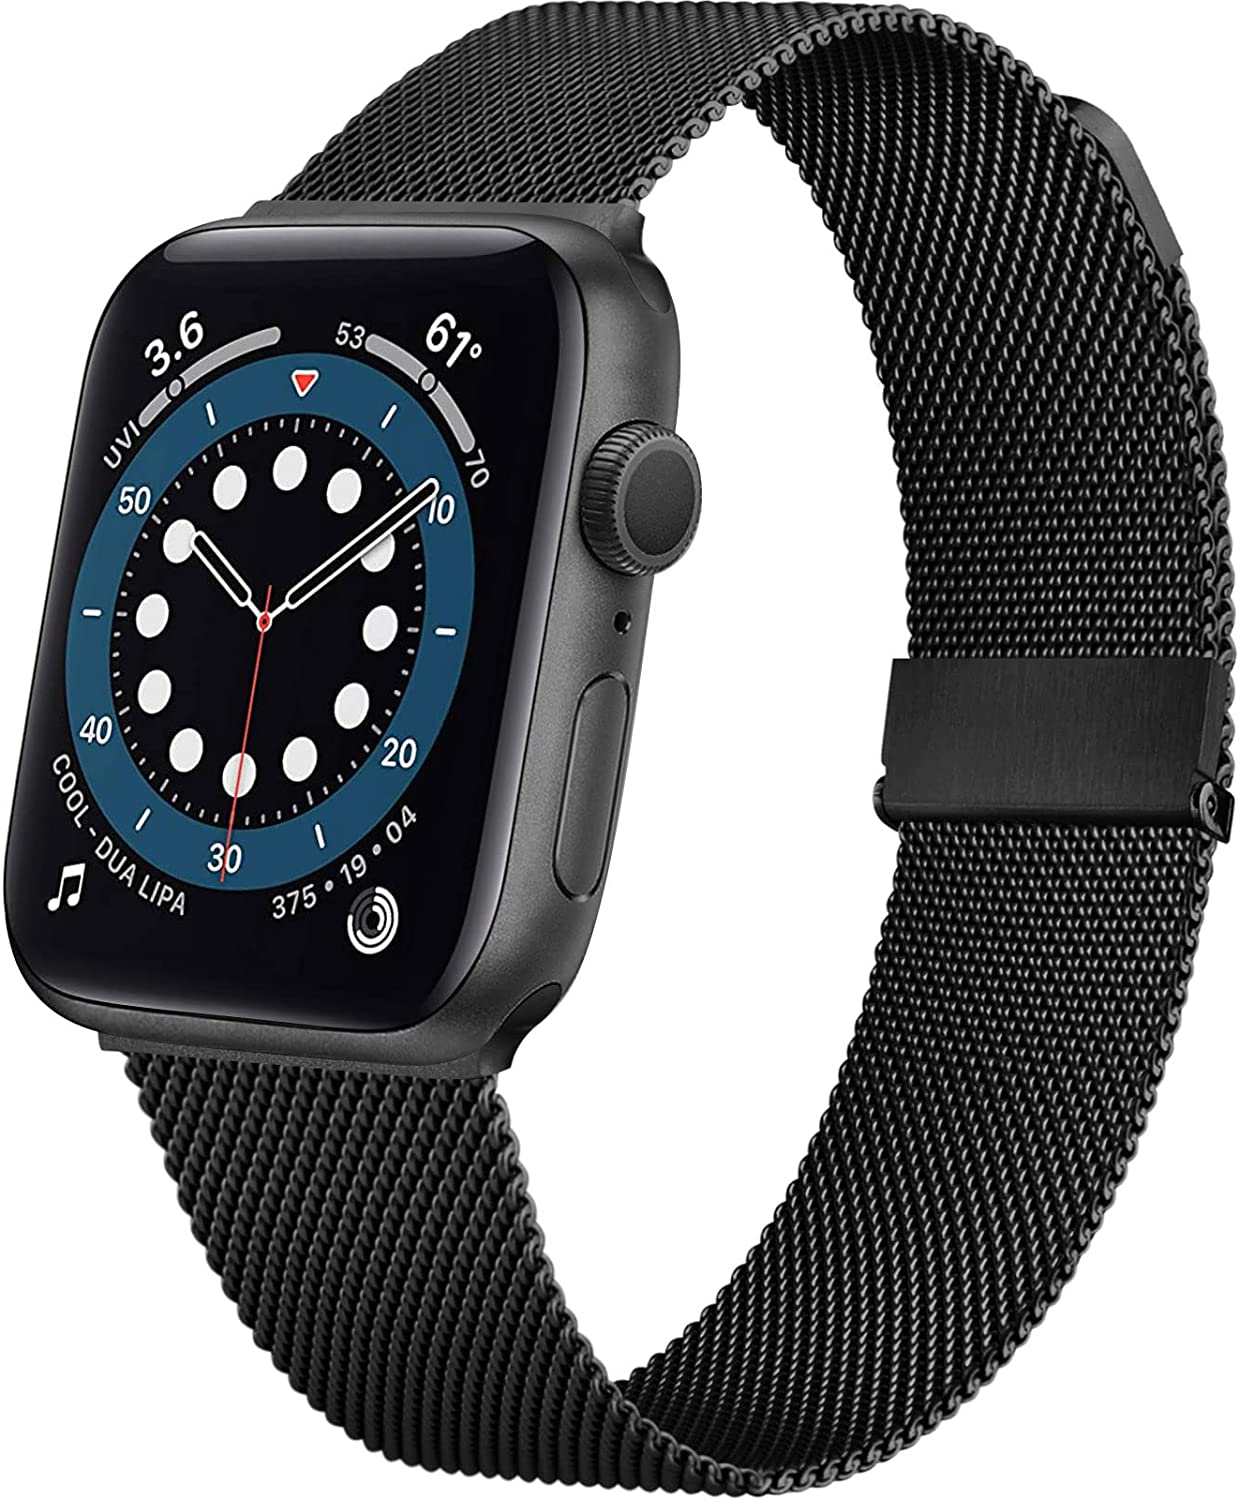 Mugust NEW upgrade Metal Magnetic Bands Compatible for Apple Watch Band 40mm 44mm 38mm 42mm, Stainless Steel Mesh Loop Replacement Band Compatible with iWatch Series 6 5 4 3 2 1 SE for Women Men